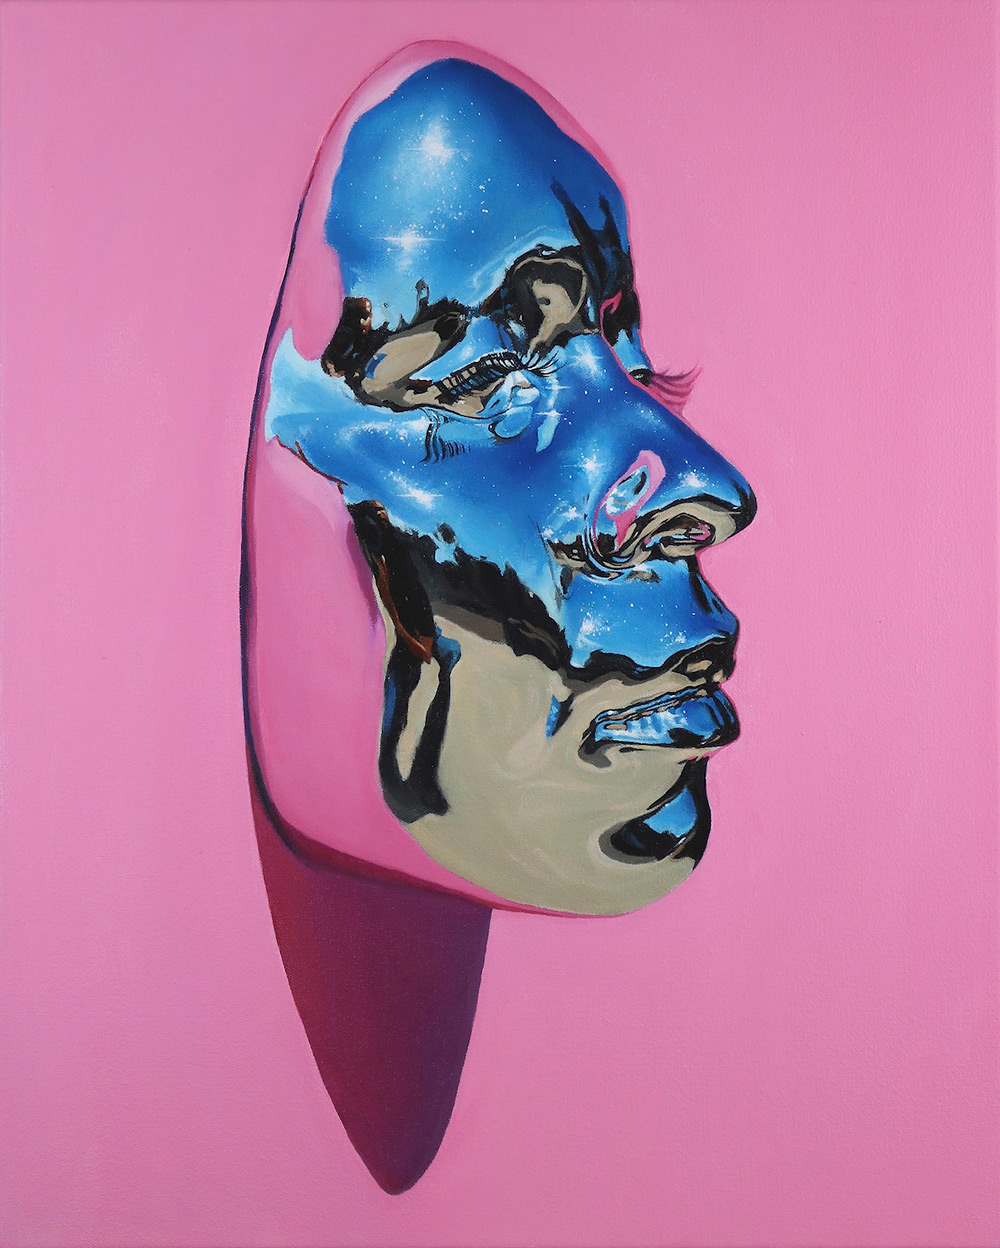 Hyperrealistic paintings of chrome masks by kip omolade